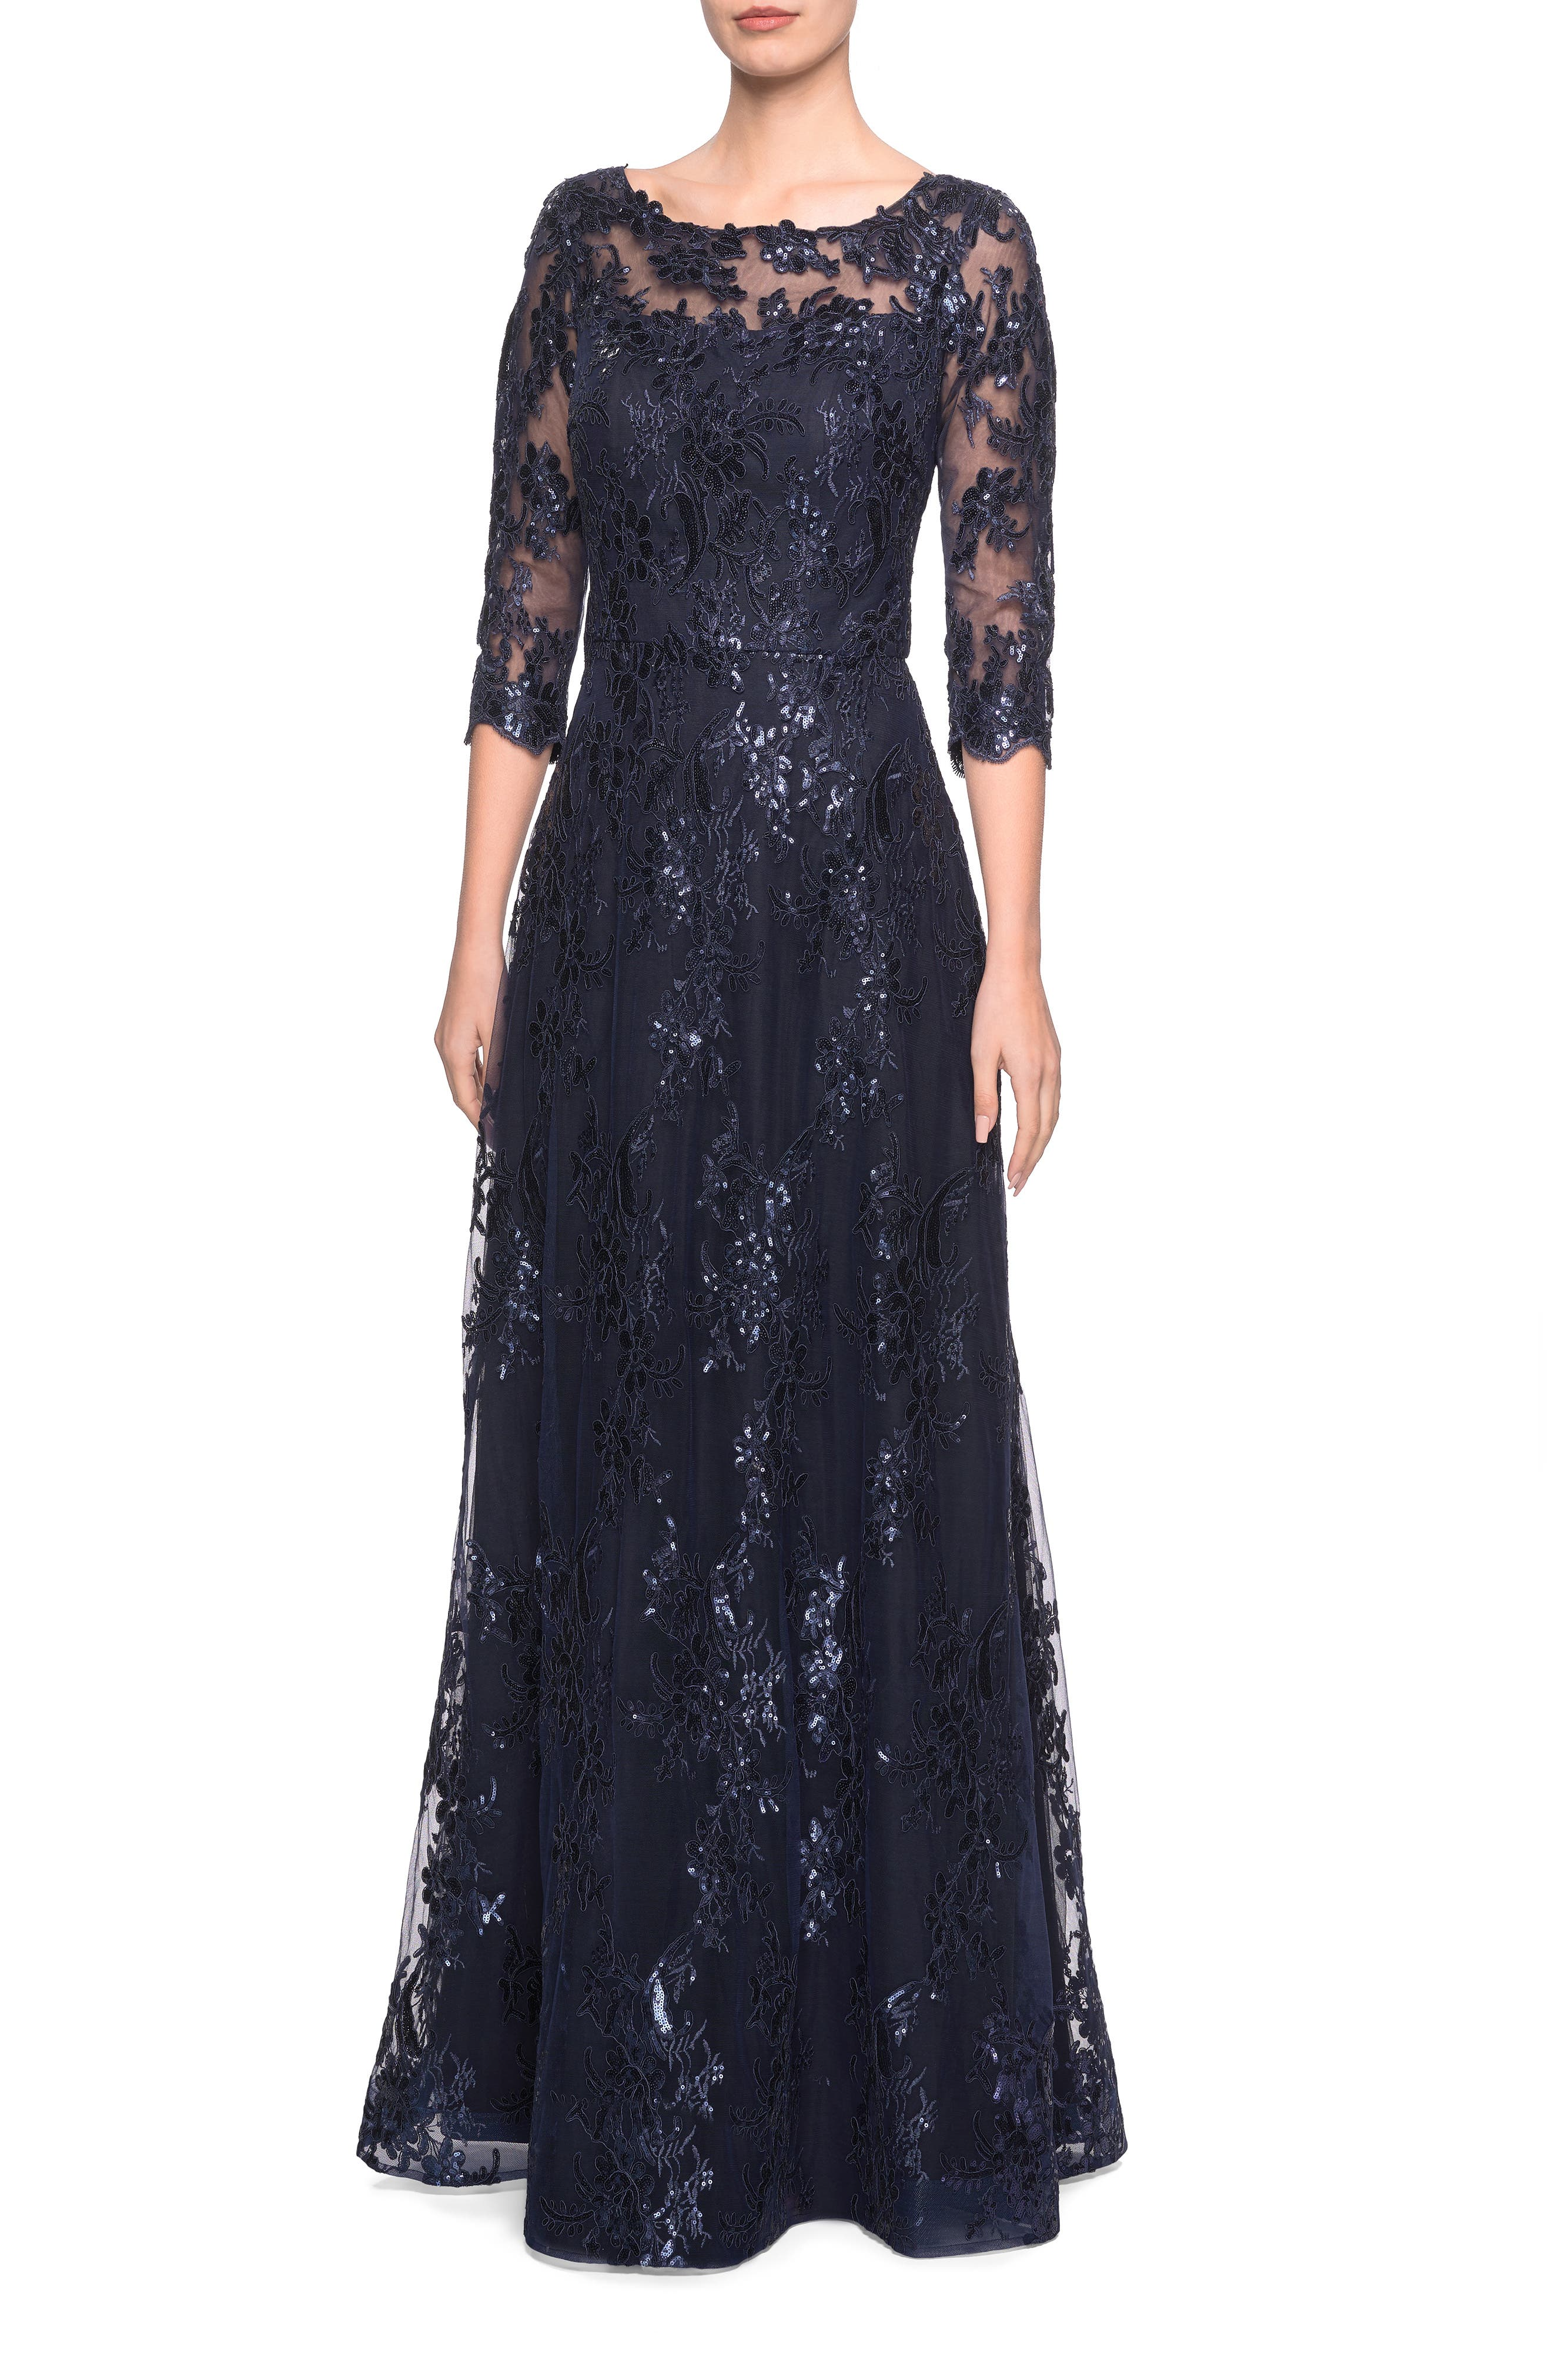 Shimmer Sequin Lace Evening Dress,                             Main thumbnail 1, color,                             NAVY